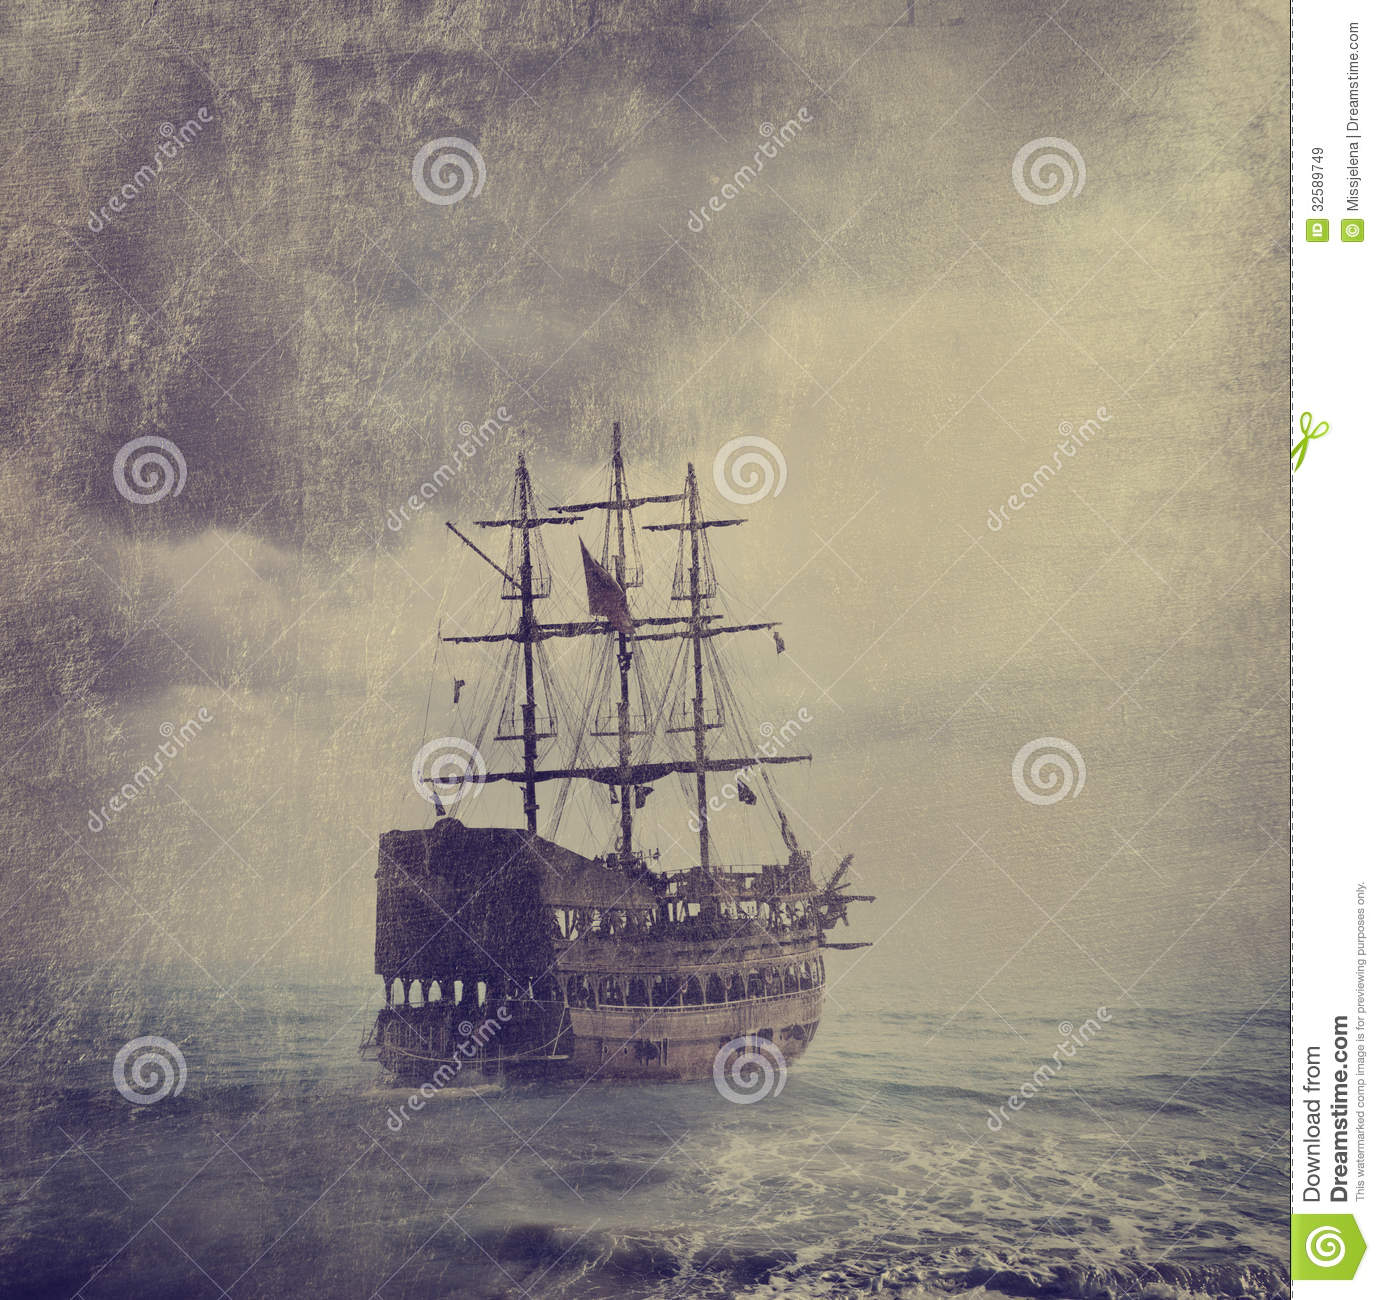 pirate ship stock photos images u0026 pictures 6 786 images